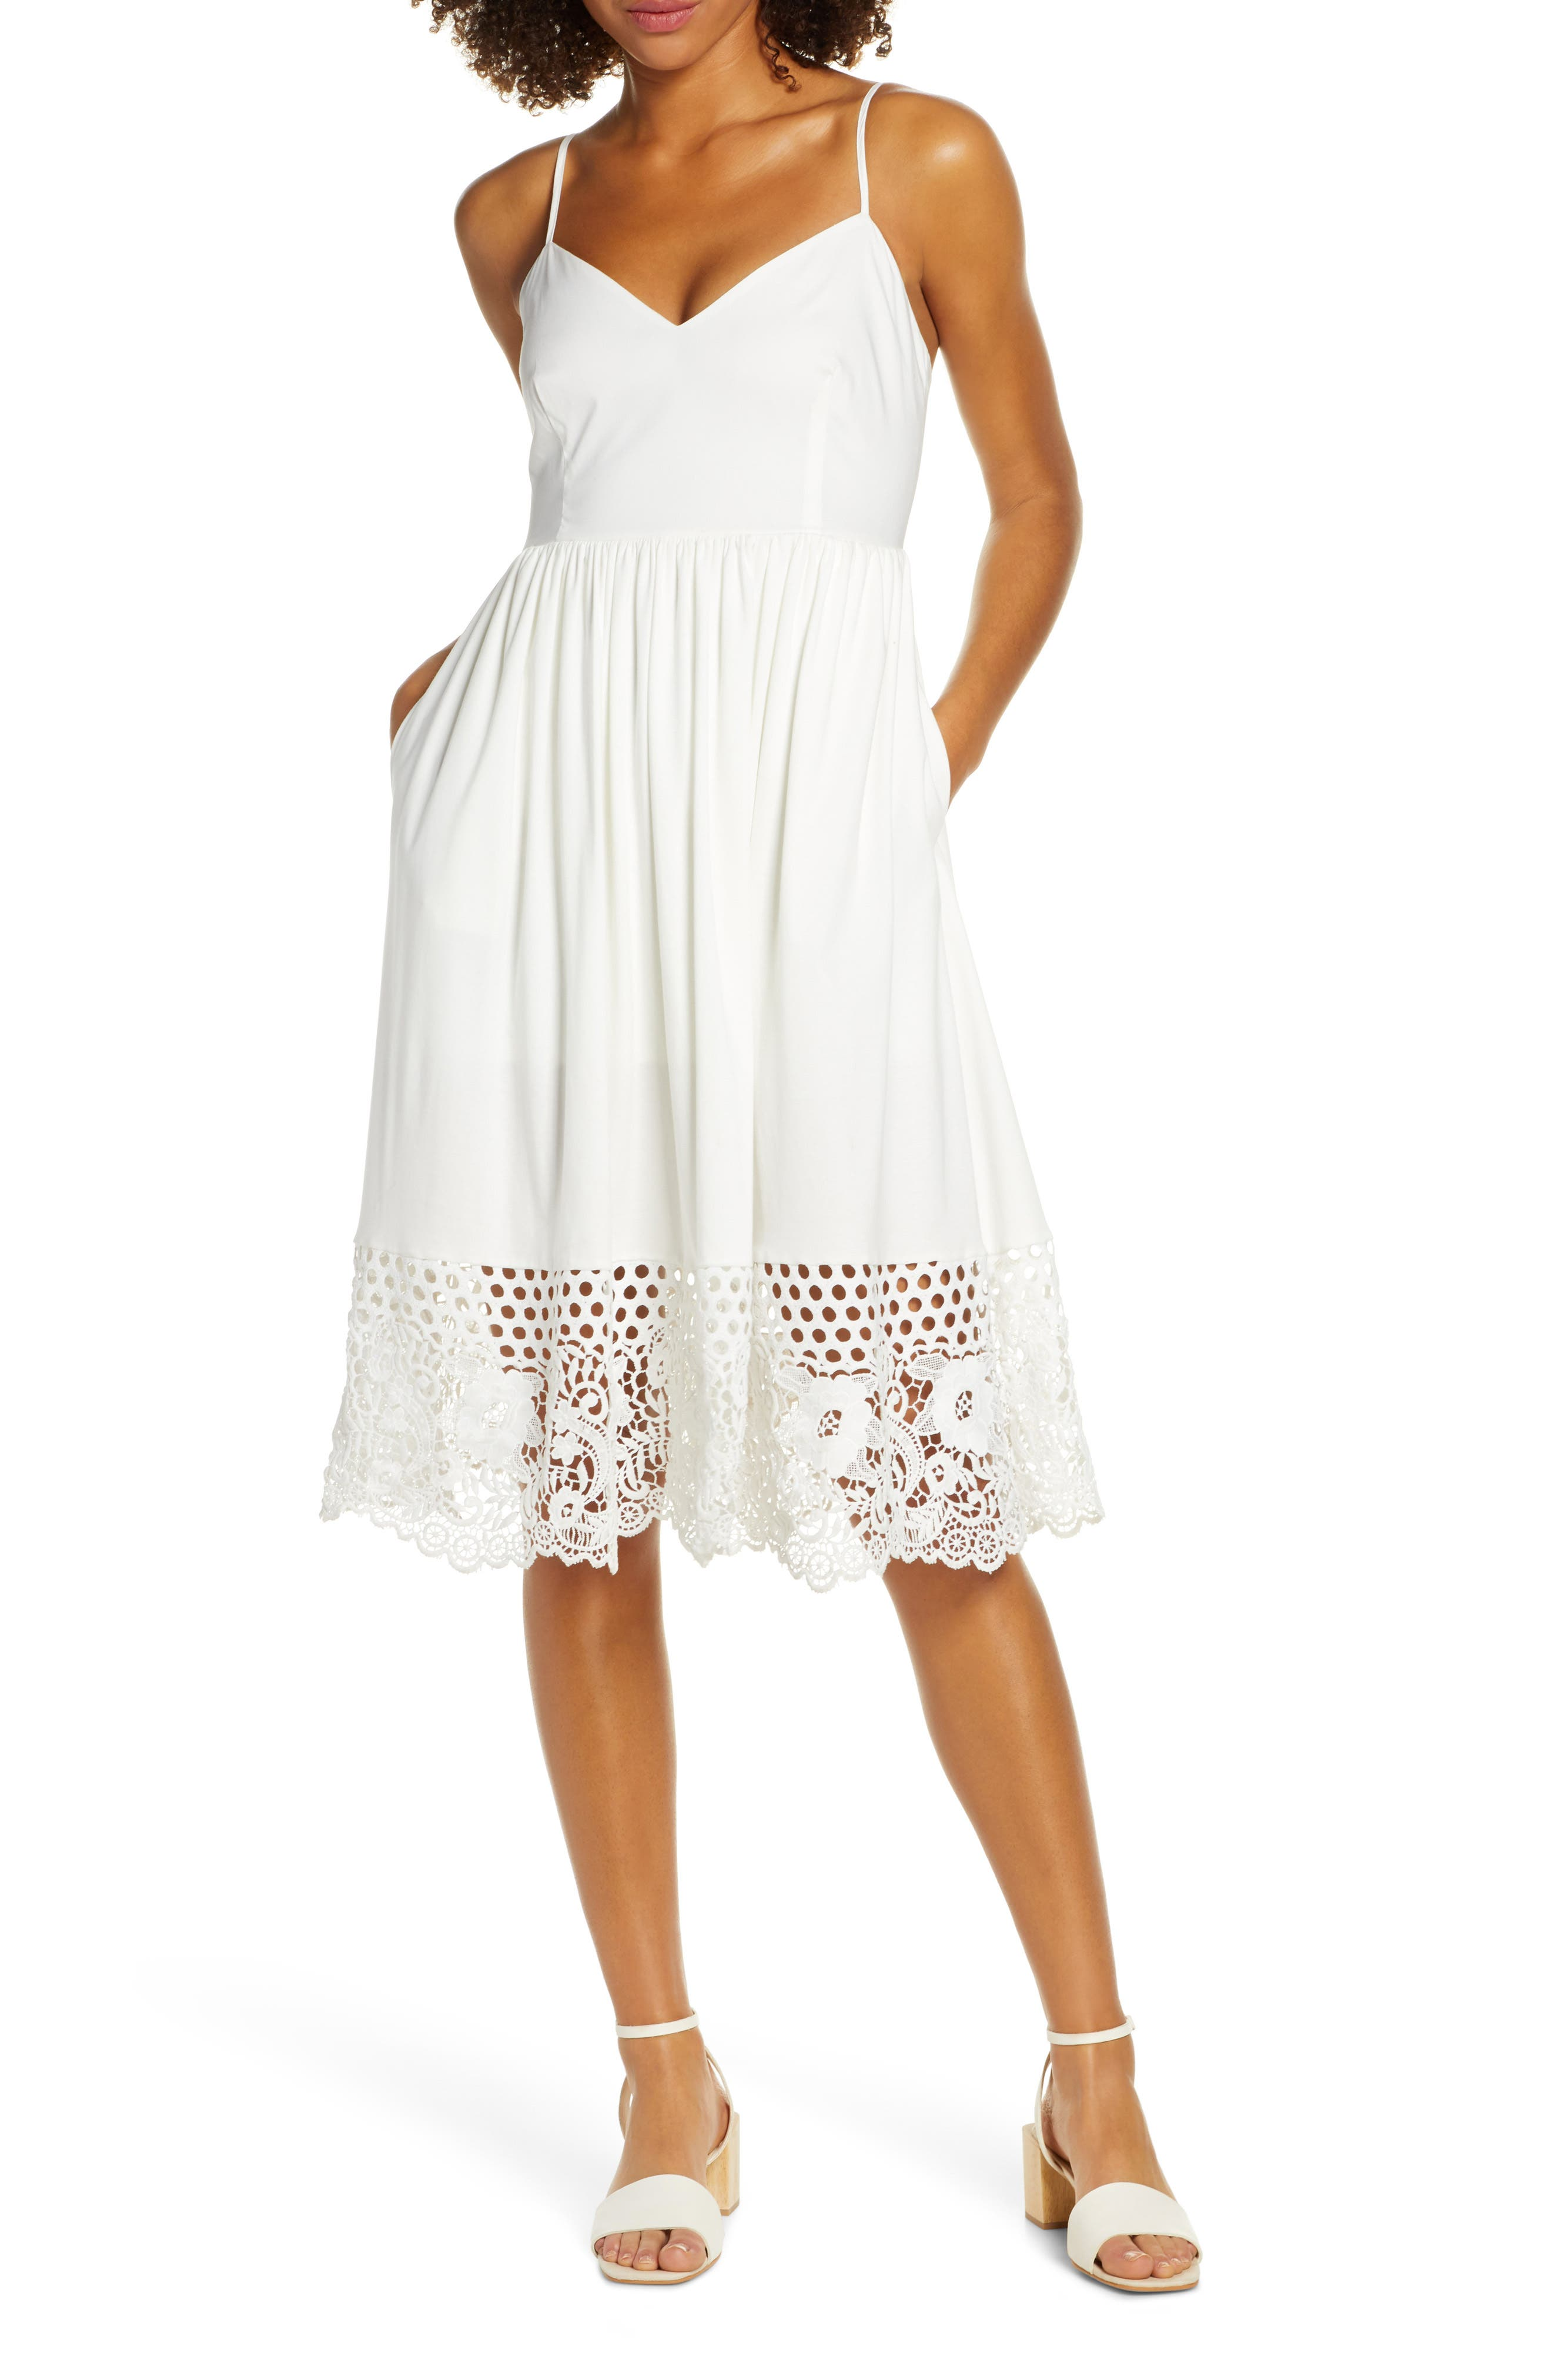 French Connection Dresses Salerno Lace Border Sundress